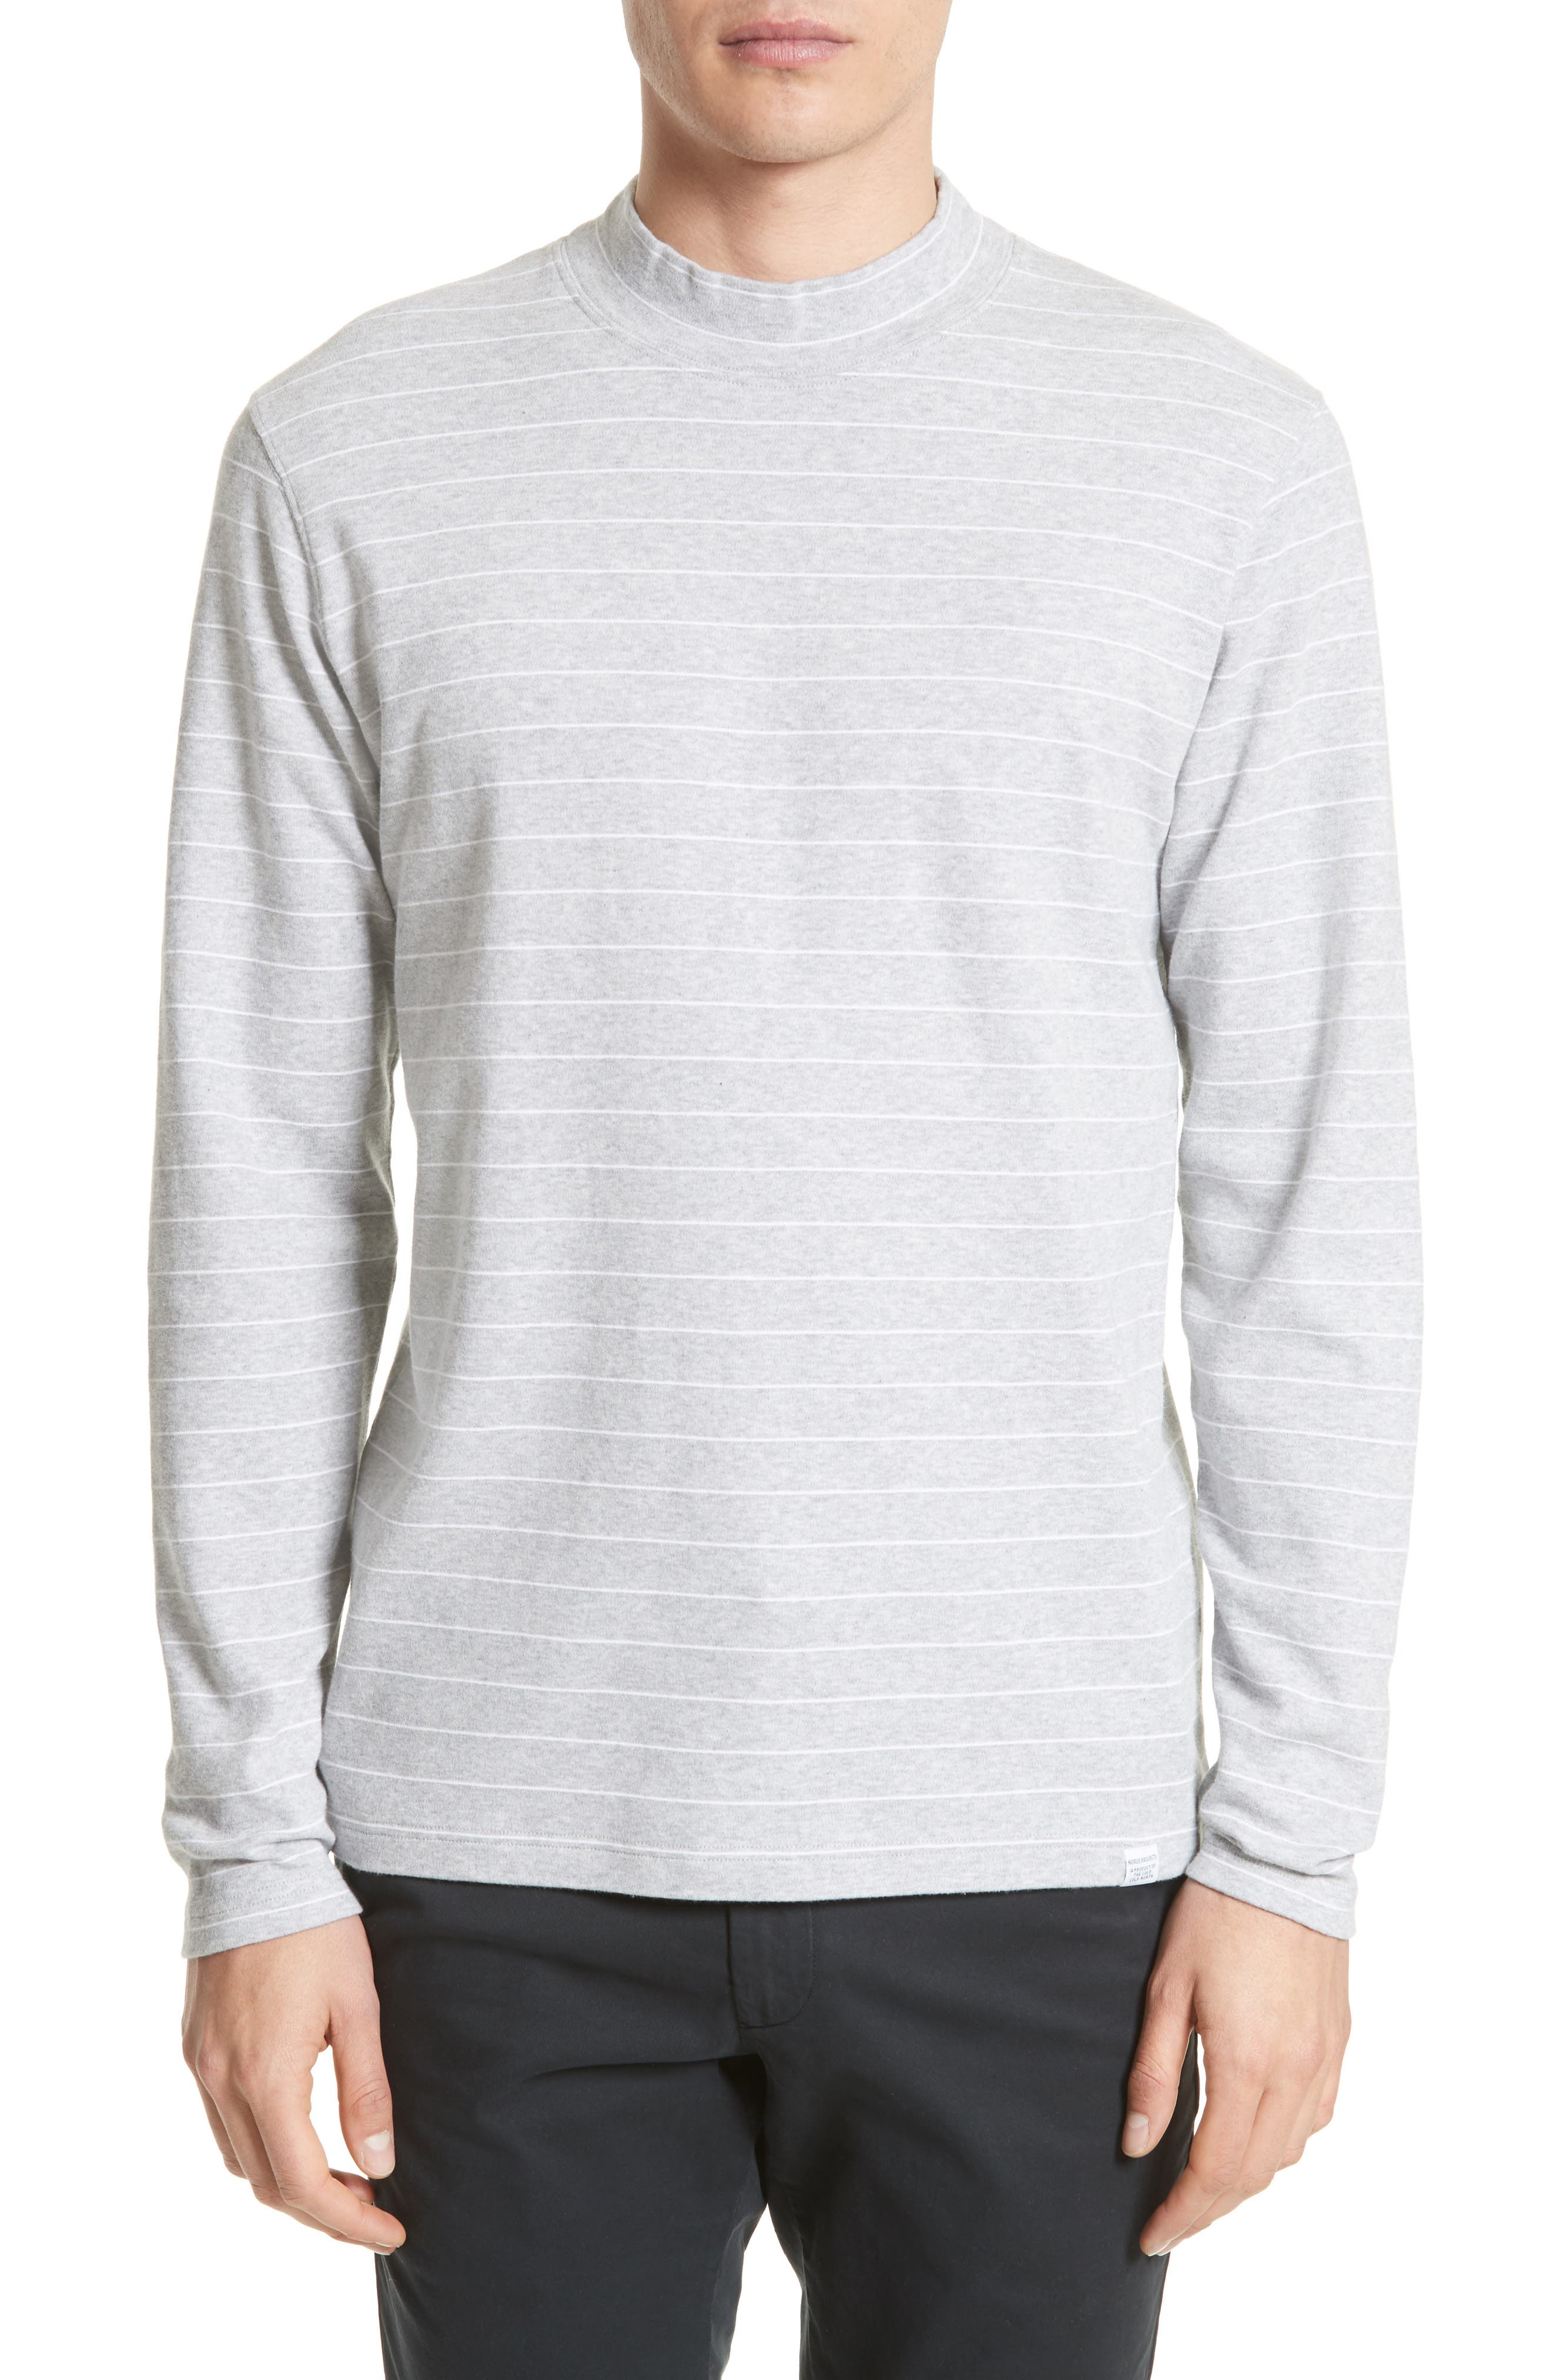 NORSE PROJECTS Harald Mock Neck T-Shirt, Main, color, 050